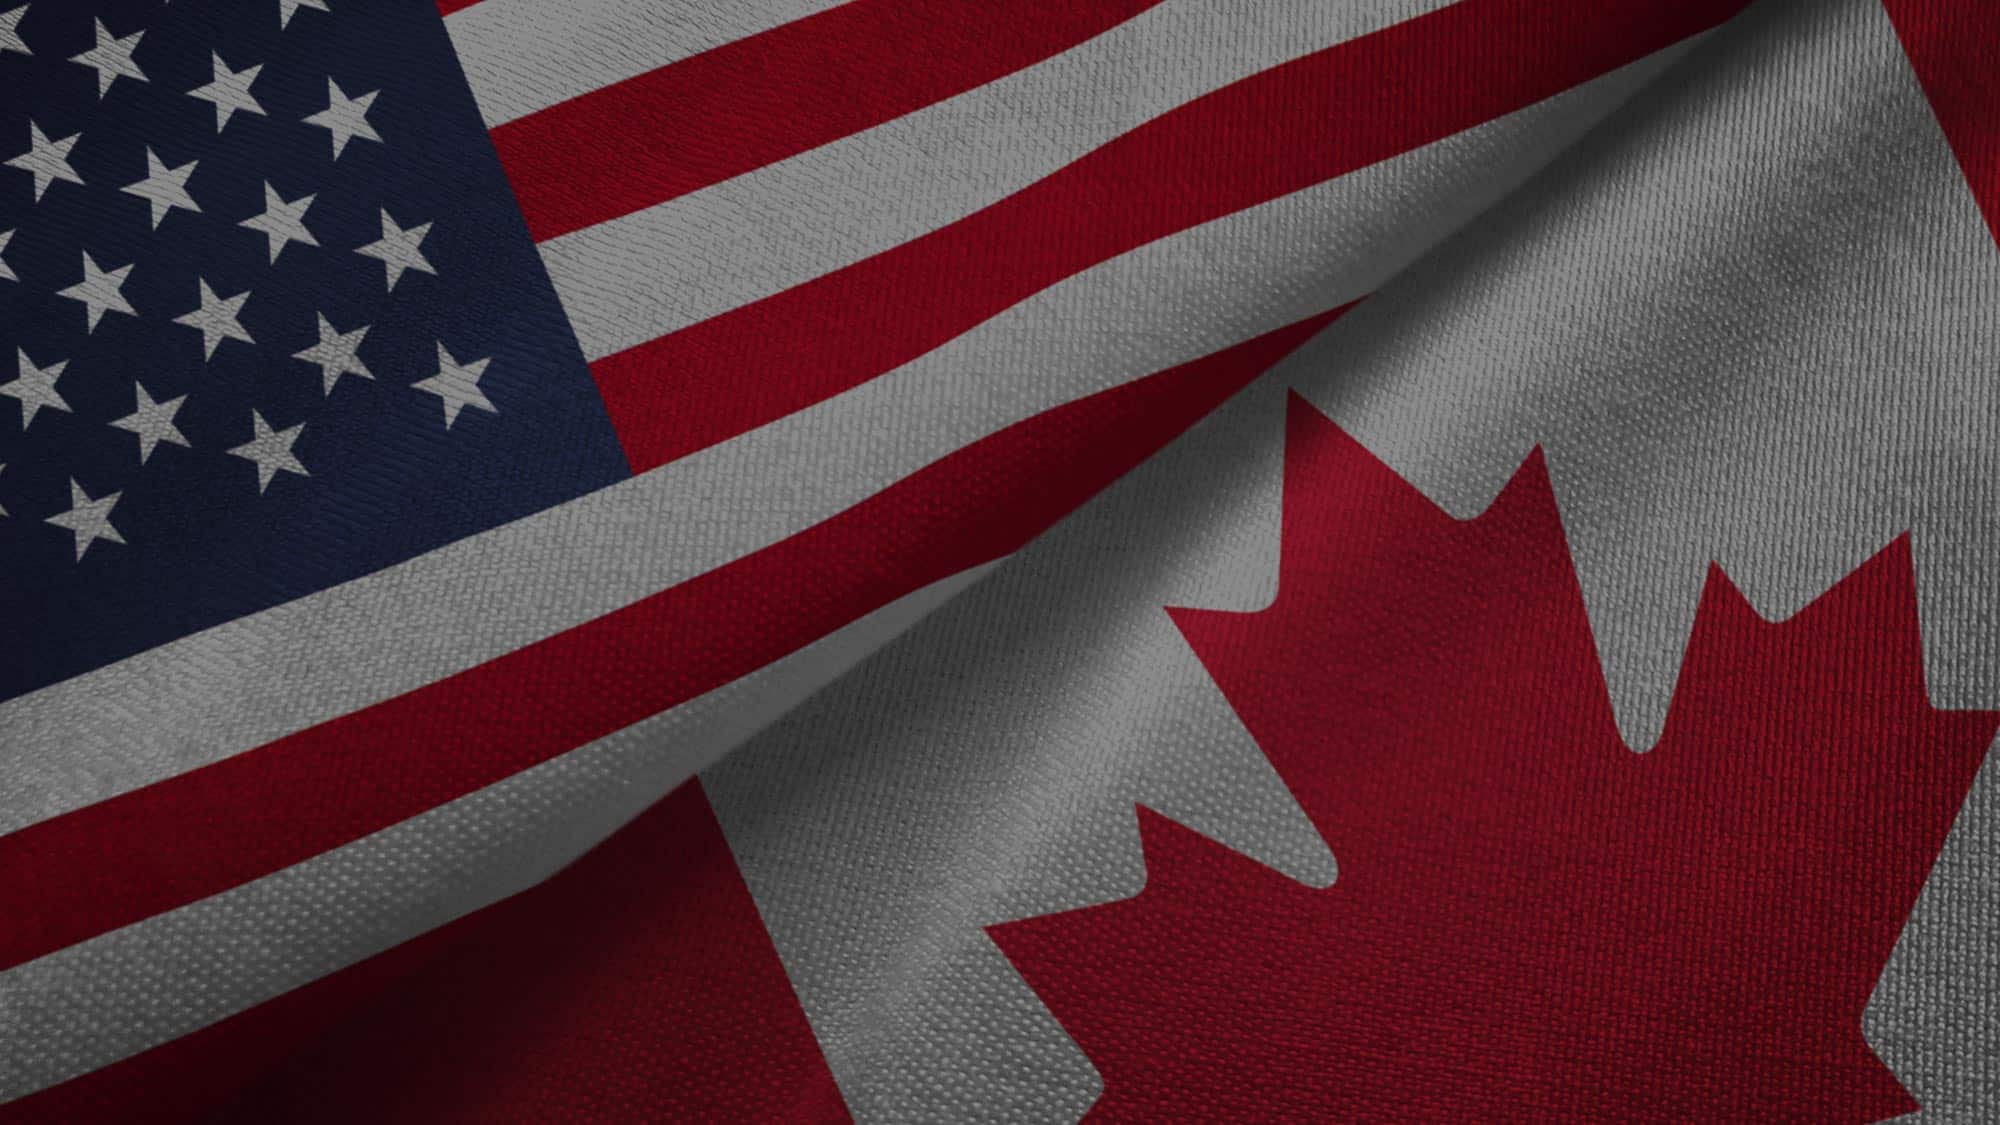 USA & Canada Cloud Hosting presented by SMB Solutions